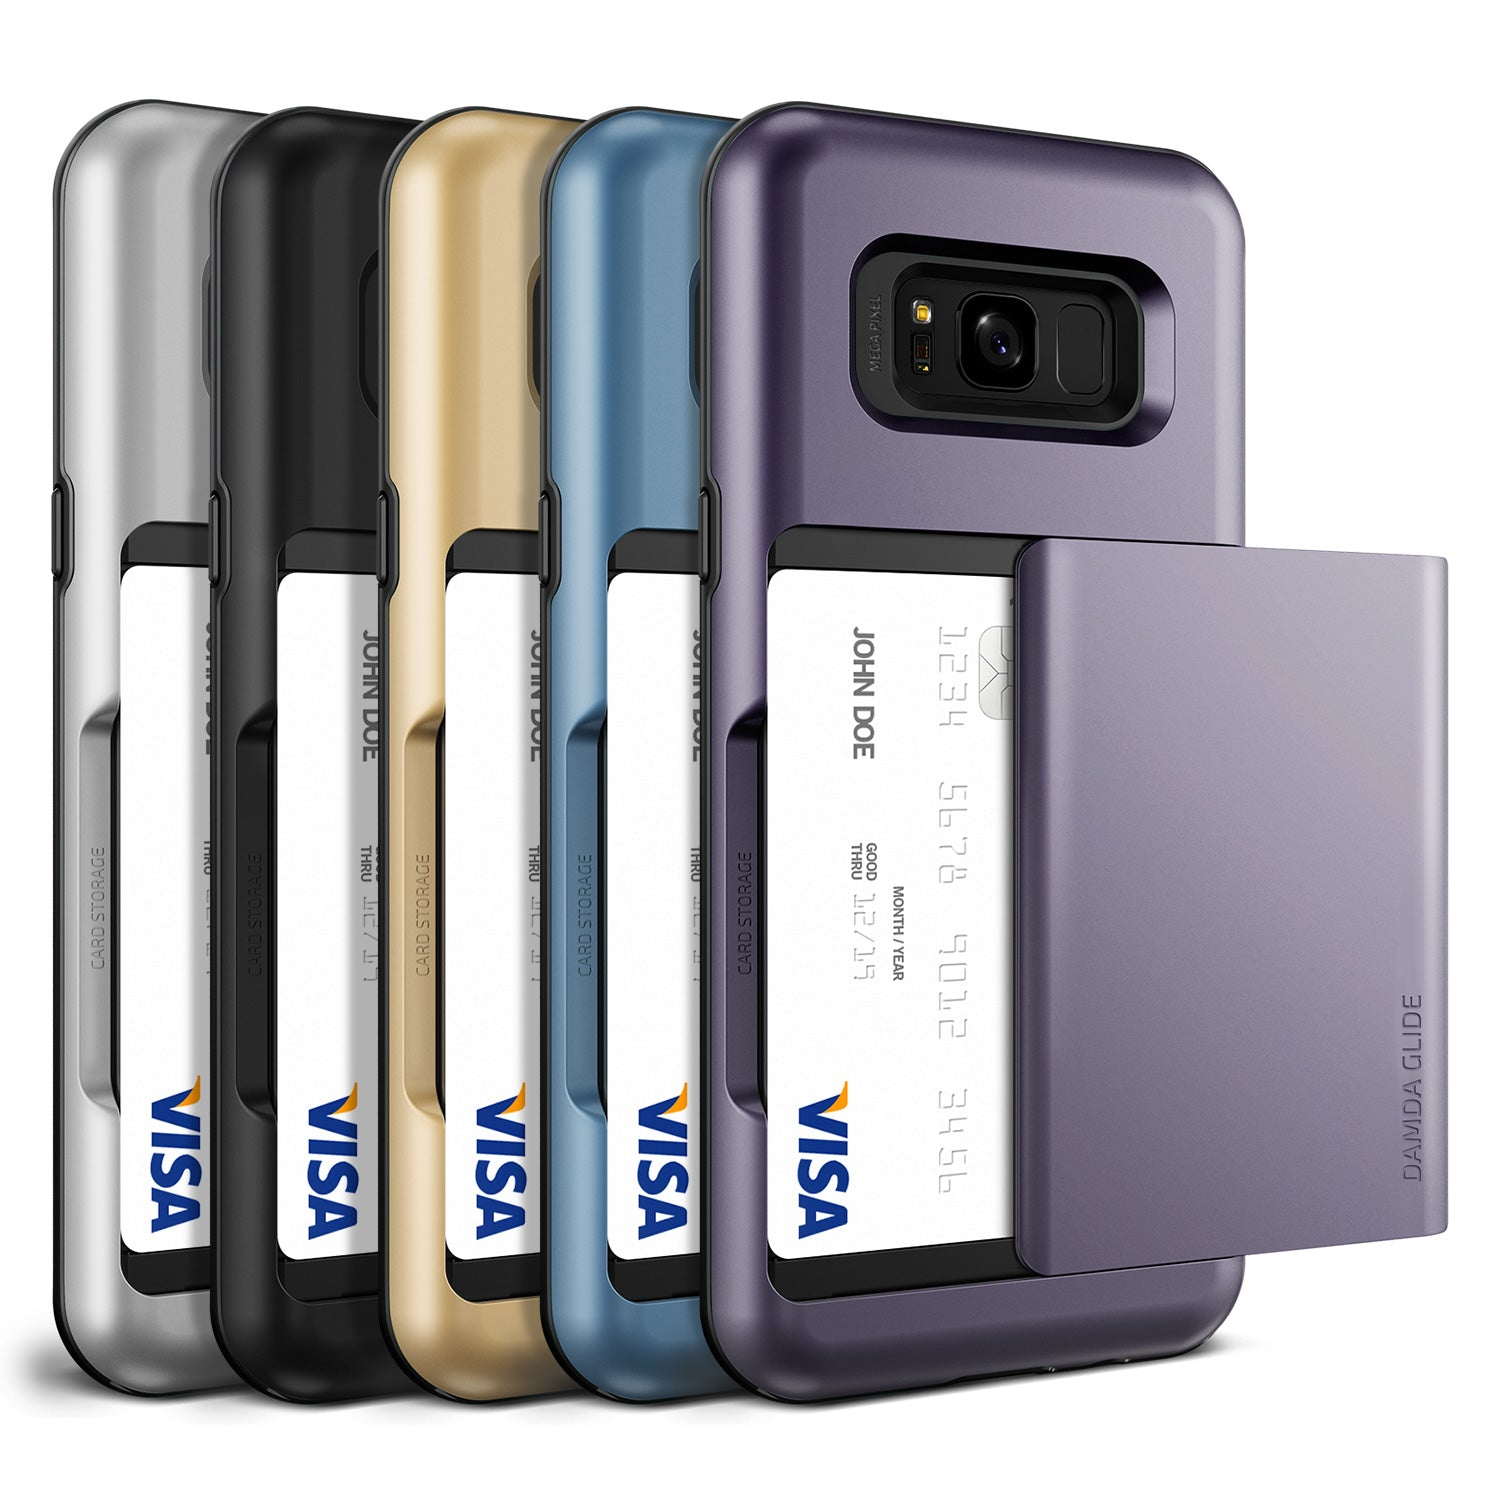 Damda Glide Galaxy S8 cases from VRS Design